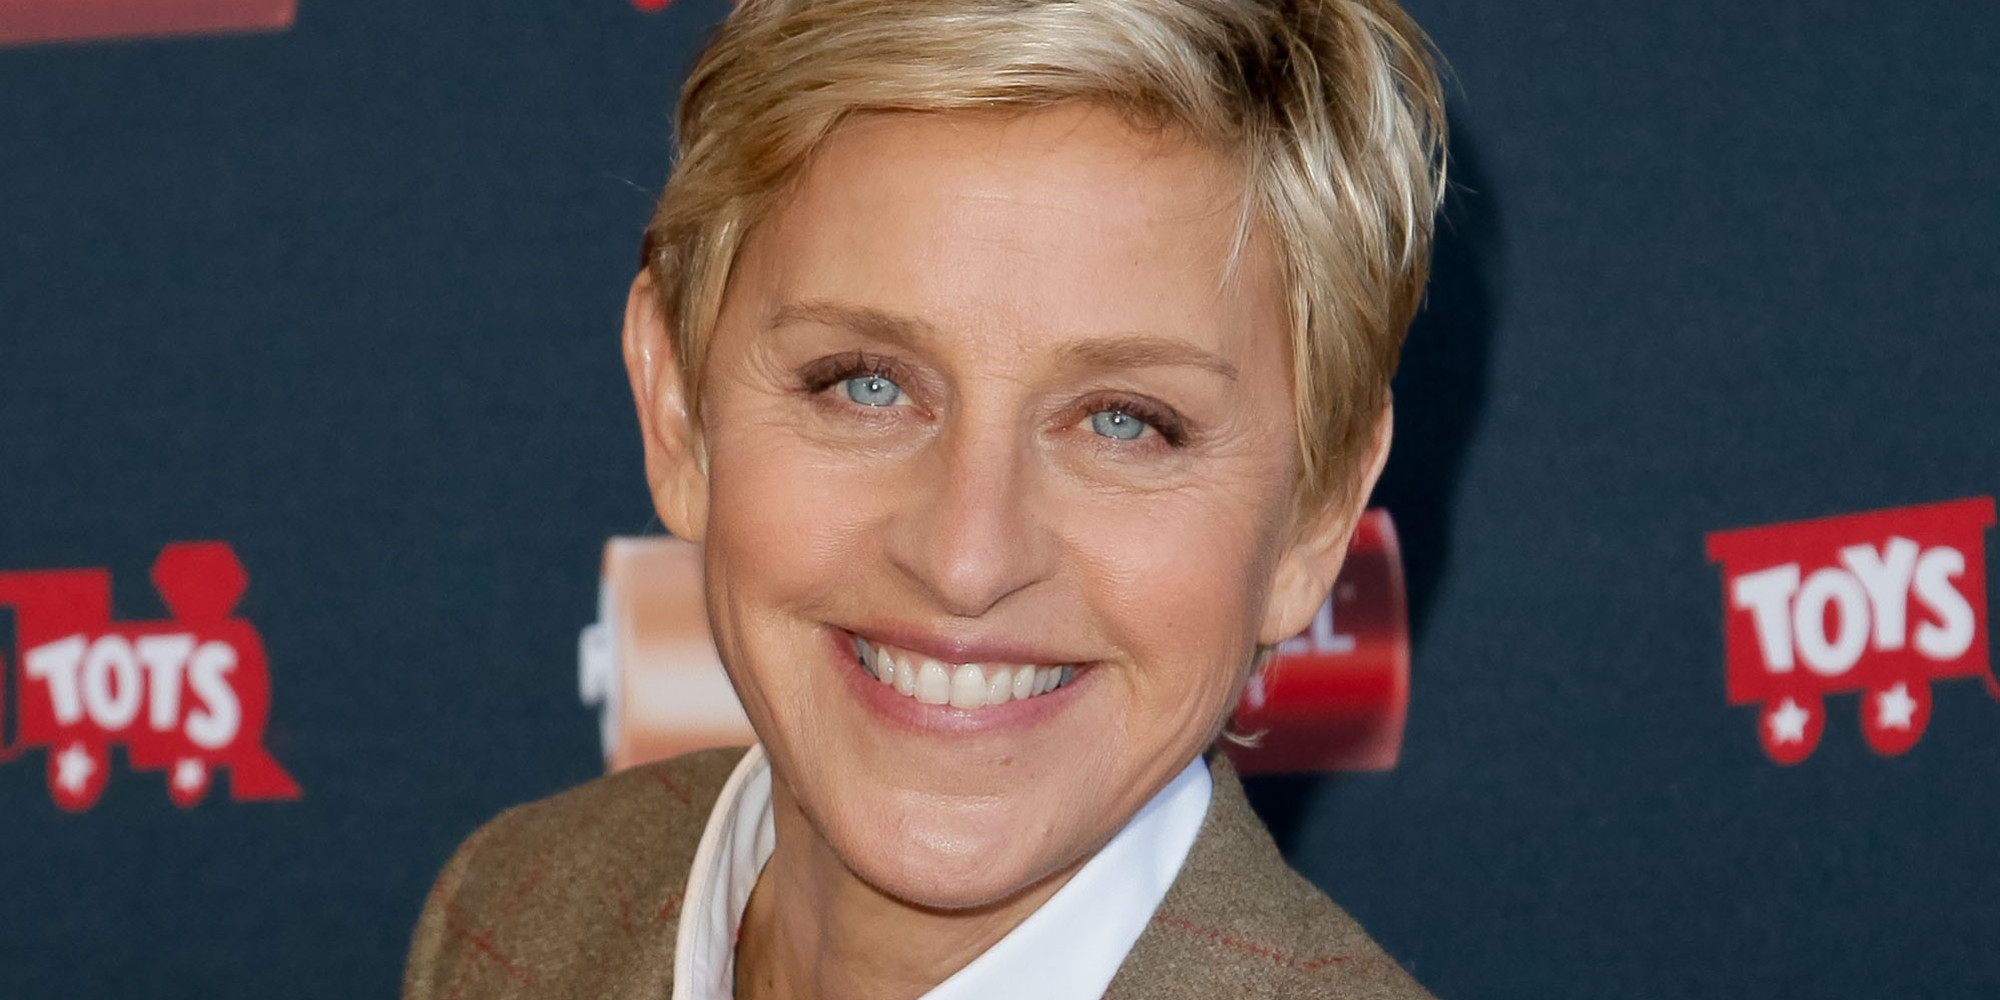 ellen degeneres oscarellen degeneres show, ellen degeneres instagram, ellen degeneres wife, ellen degeneres wiki, ellen degeneres net worth, ellen degeneres & portia de rossi, ellen degeneres house, ellen degeneres oscar, ellen degeneres brother, ellen degeneres vk, ellen degeneres youtube, ellen degeneres game, ellen degeneres style, ellen degeneres selfie, ellen degeneres insta, ellen degeneres stand up, ellen degeneres quotes, ellen degeneres interview, ellen degeneres twitter, ellen degeneres email